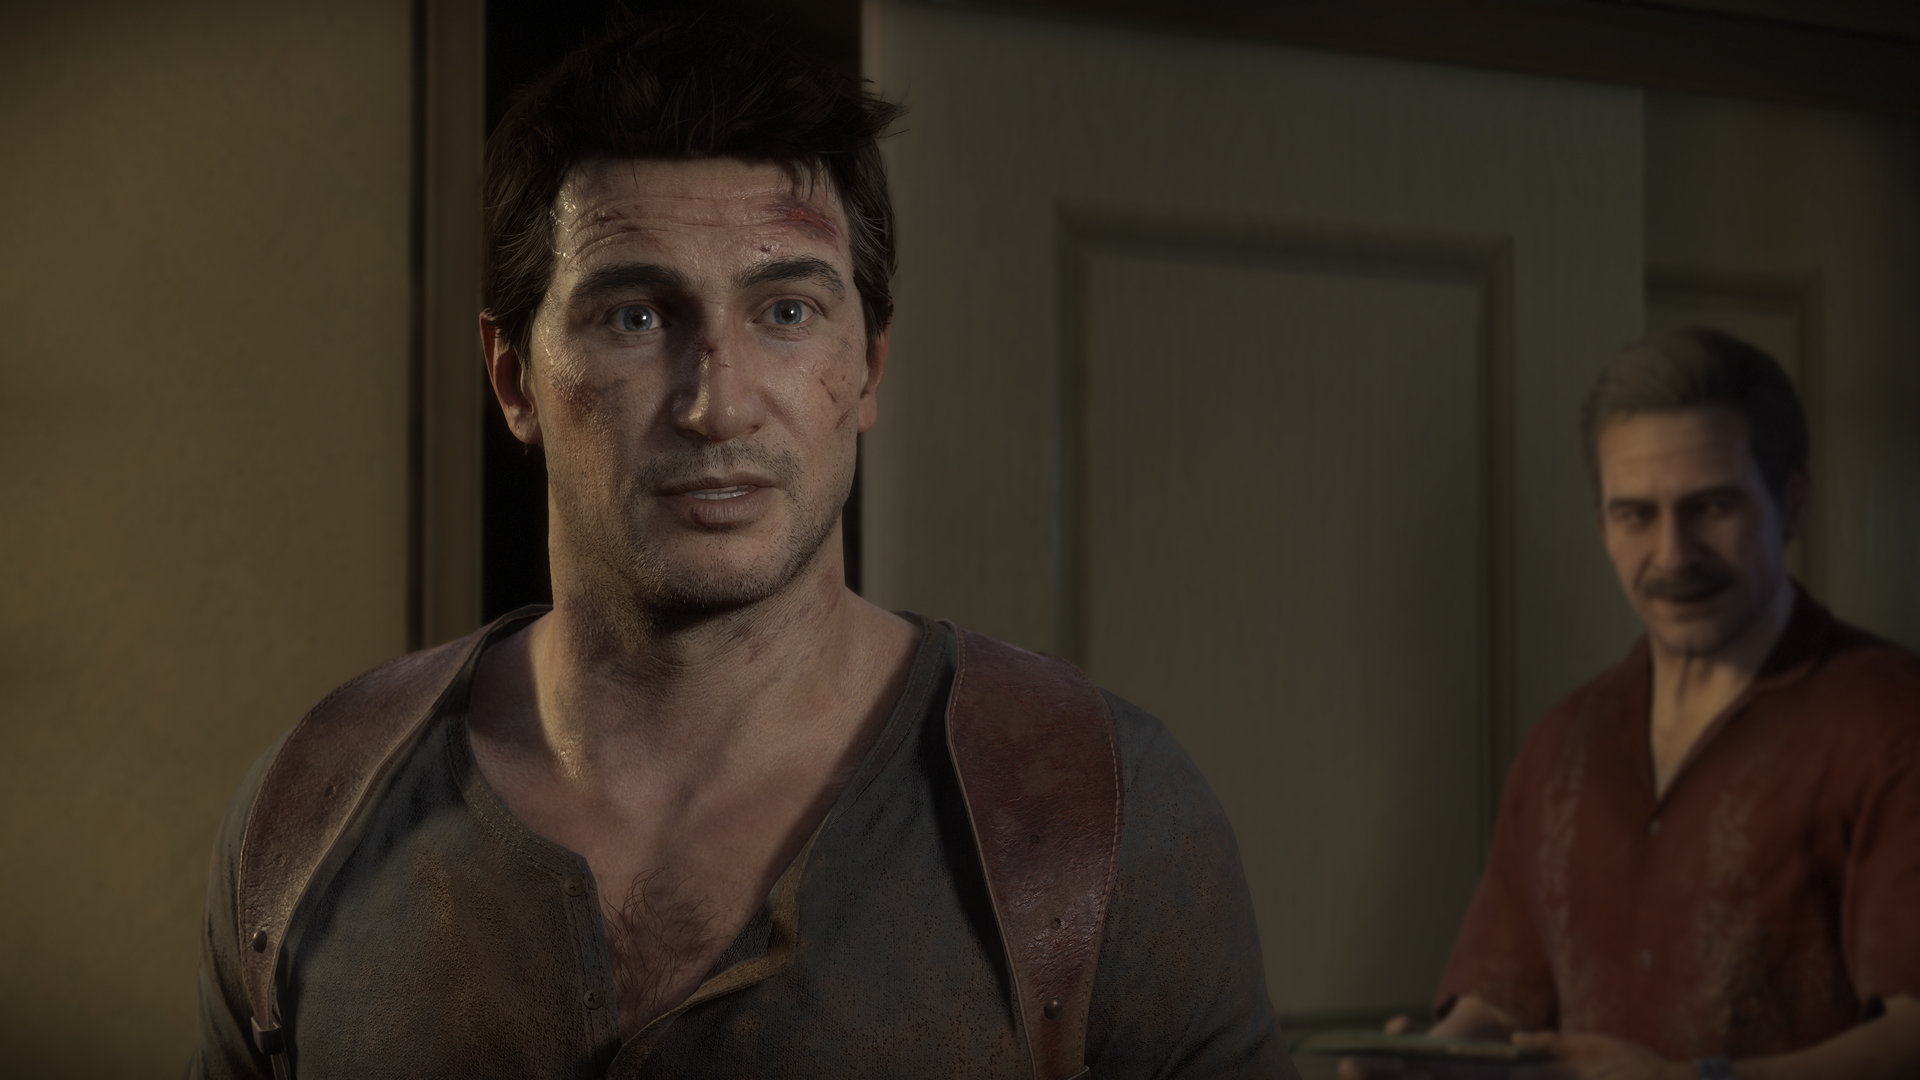 uncharted-4-screenshot-10-15jun15-pc-games